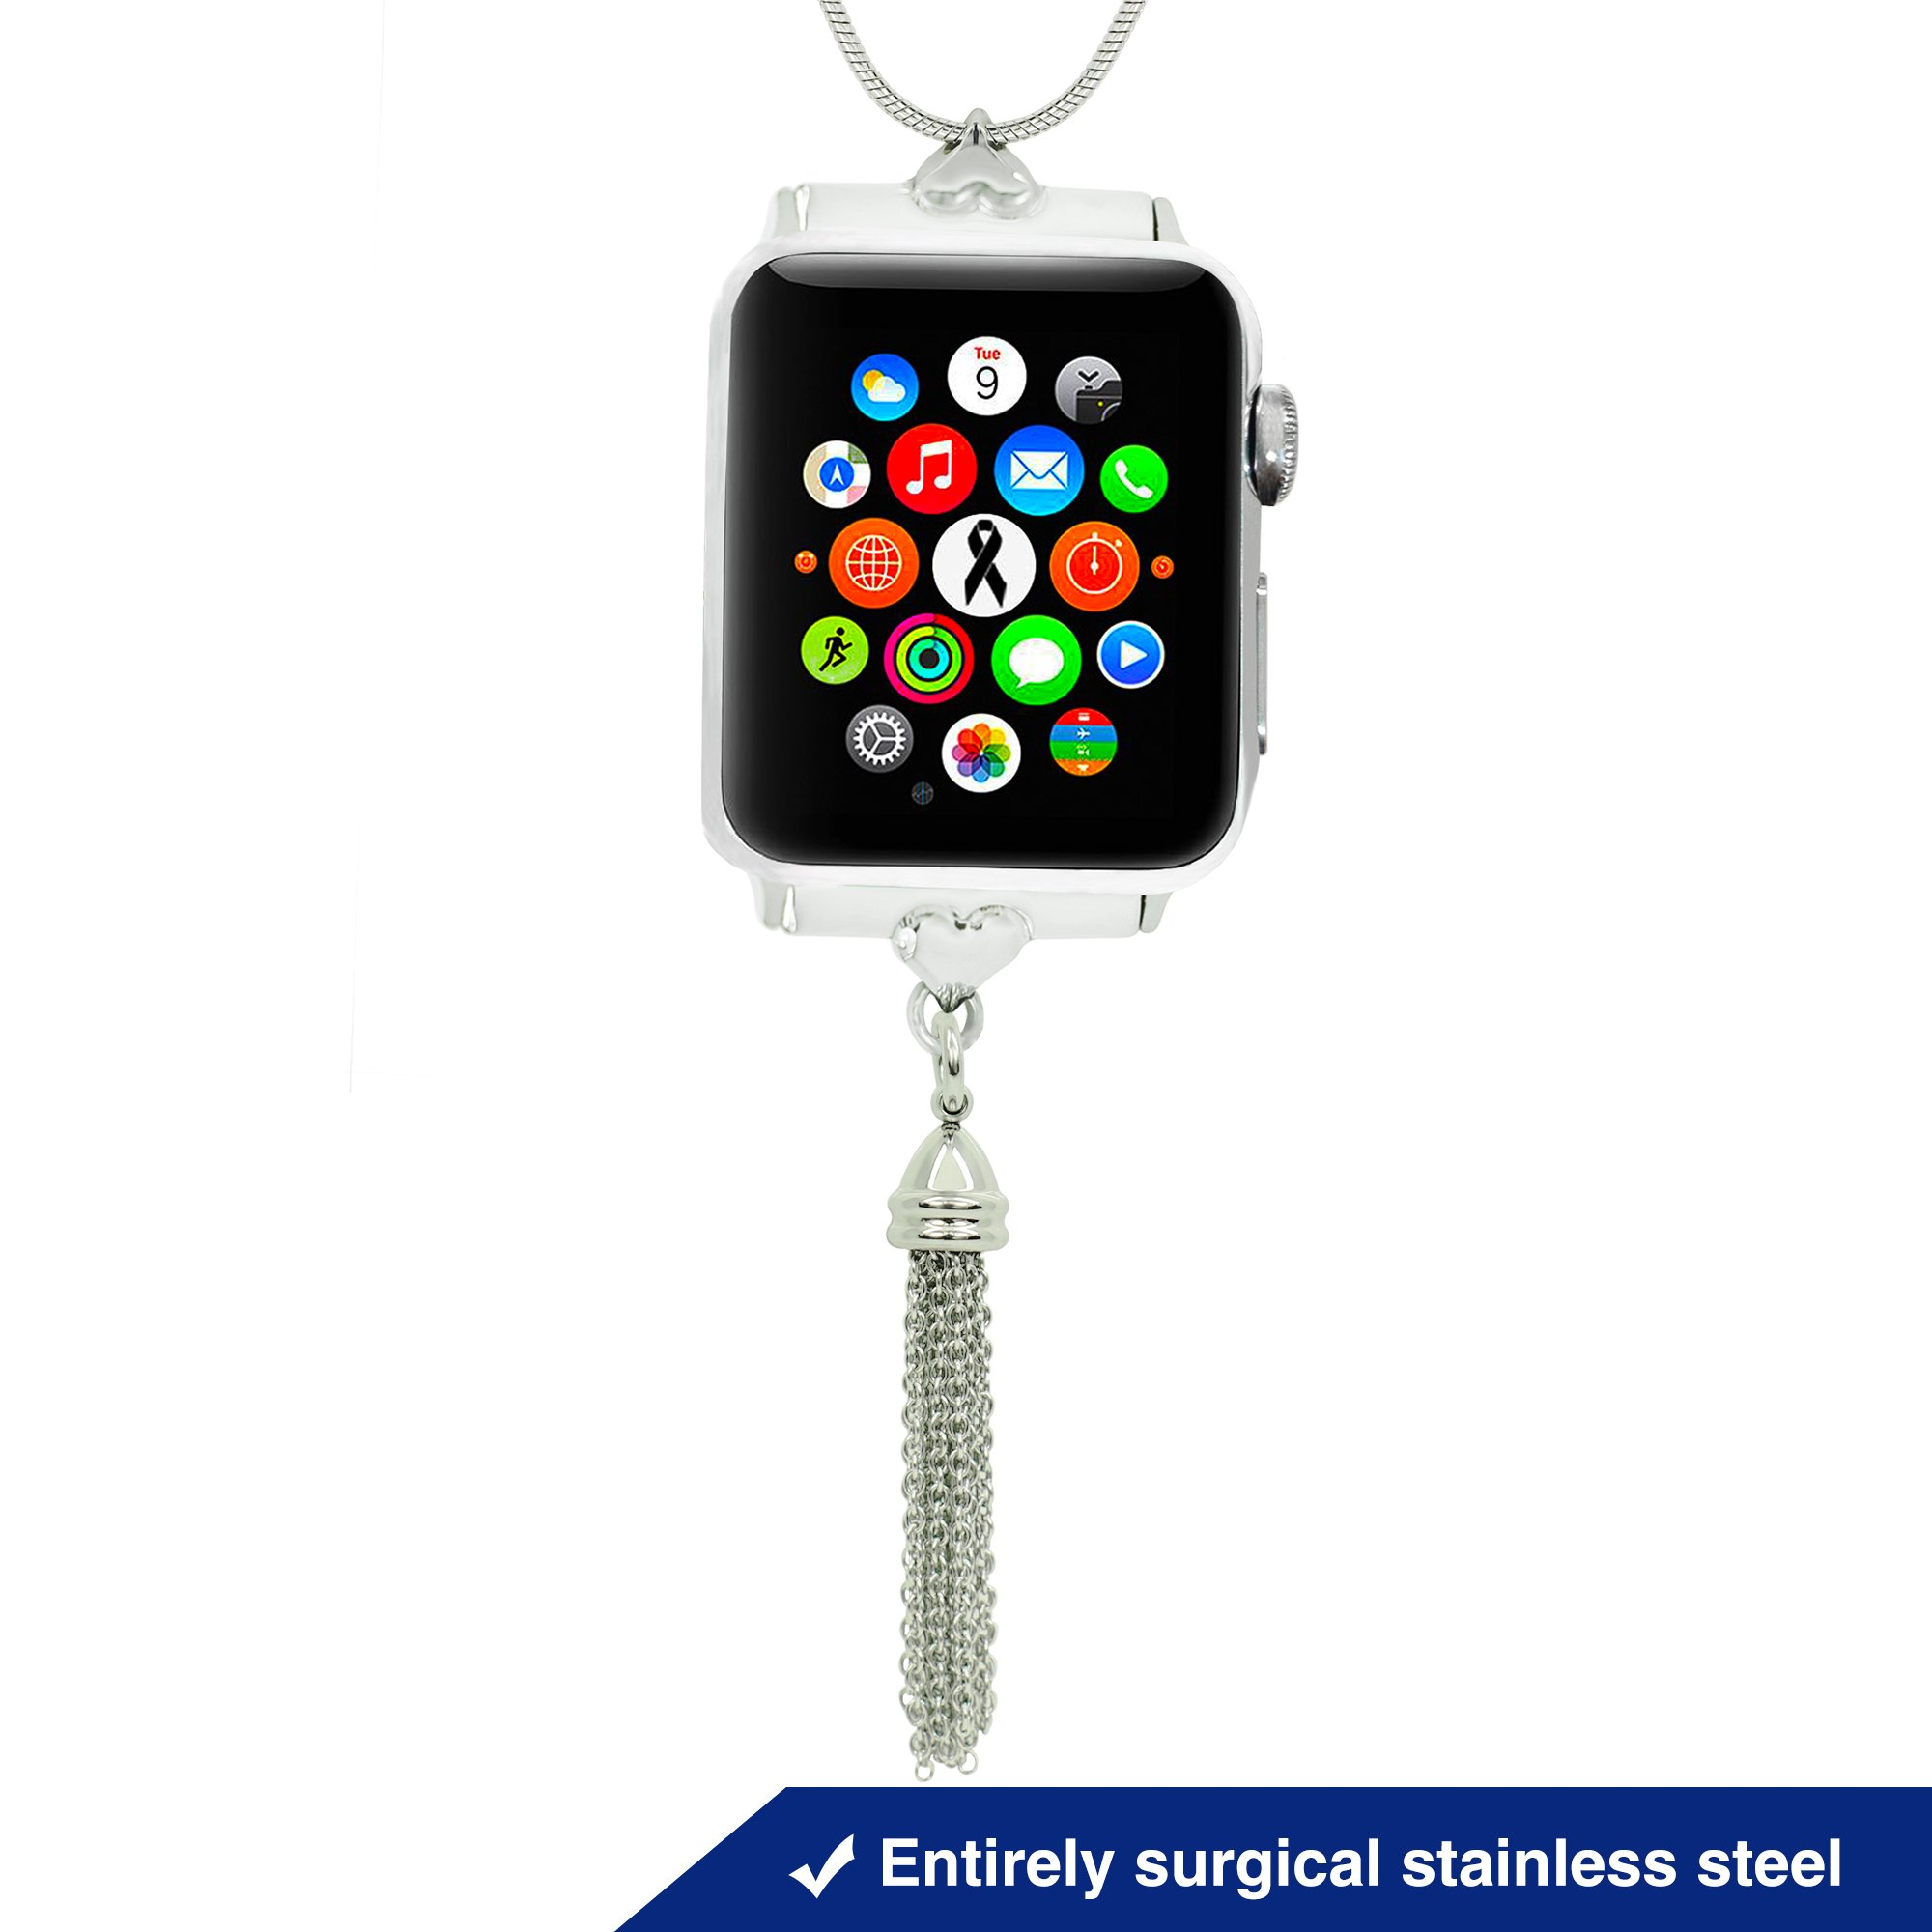 Divoti Apple Watch Necklace – 30'' Snake Chain iWatch Necklace w/Tassel – iWatch Necklace Changer for Apple Watch Series 3/2 / 1-38 mm – Entirely Surgical Stainless by Divoti (Image #1)